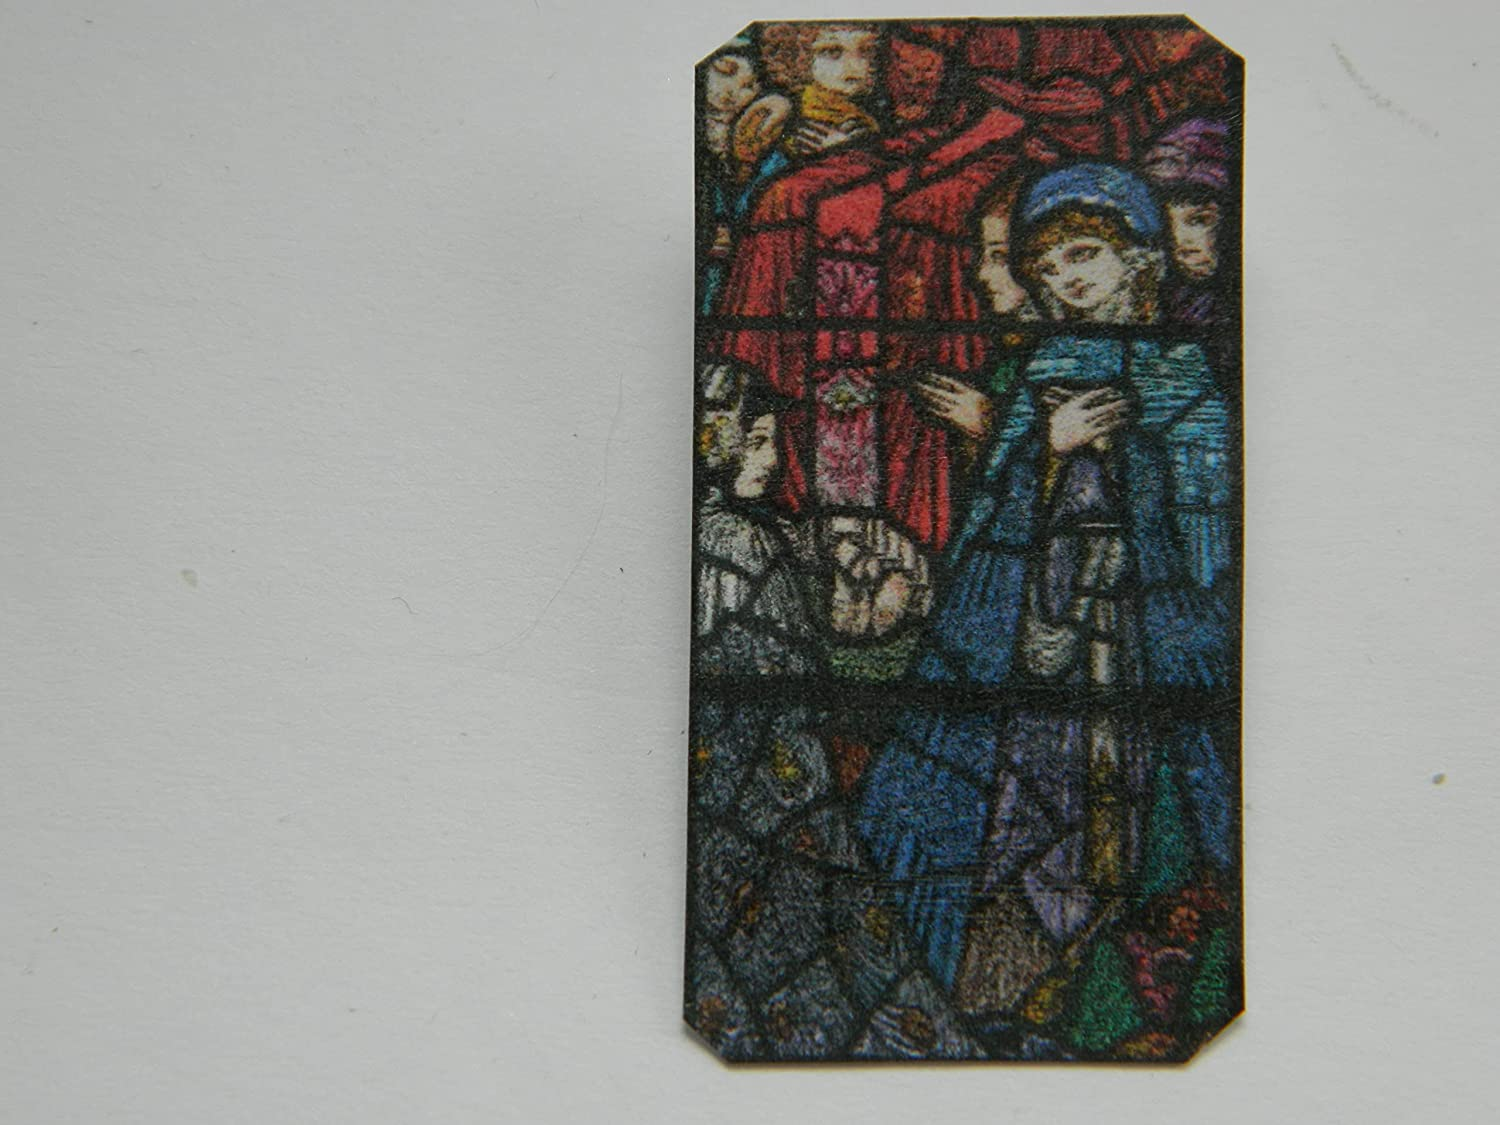 Lapel Pin Harry Clarke Stained Glass Woman Finally popular brand Detail Cloa Long Beach Mall a in Blue